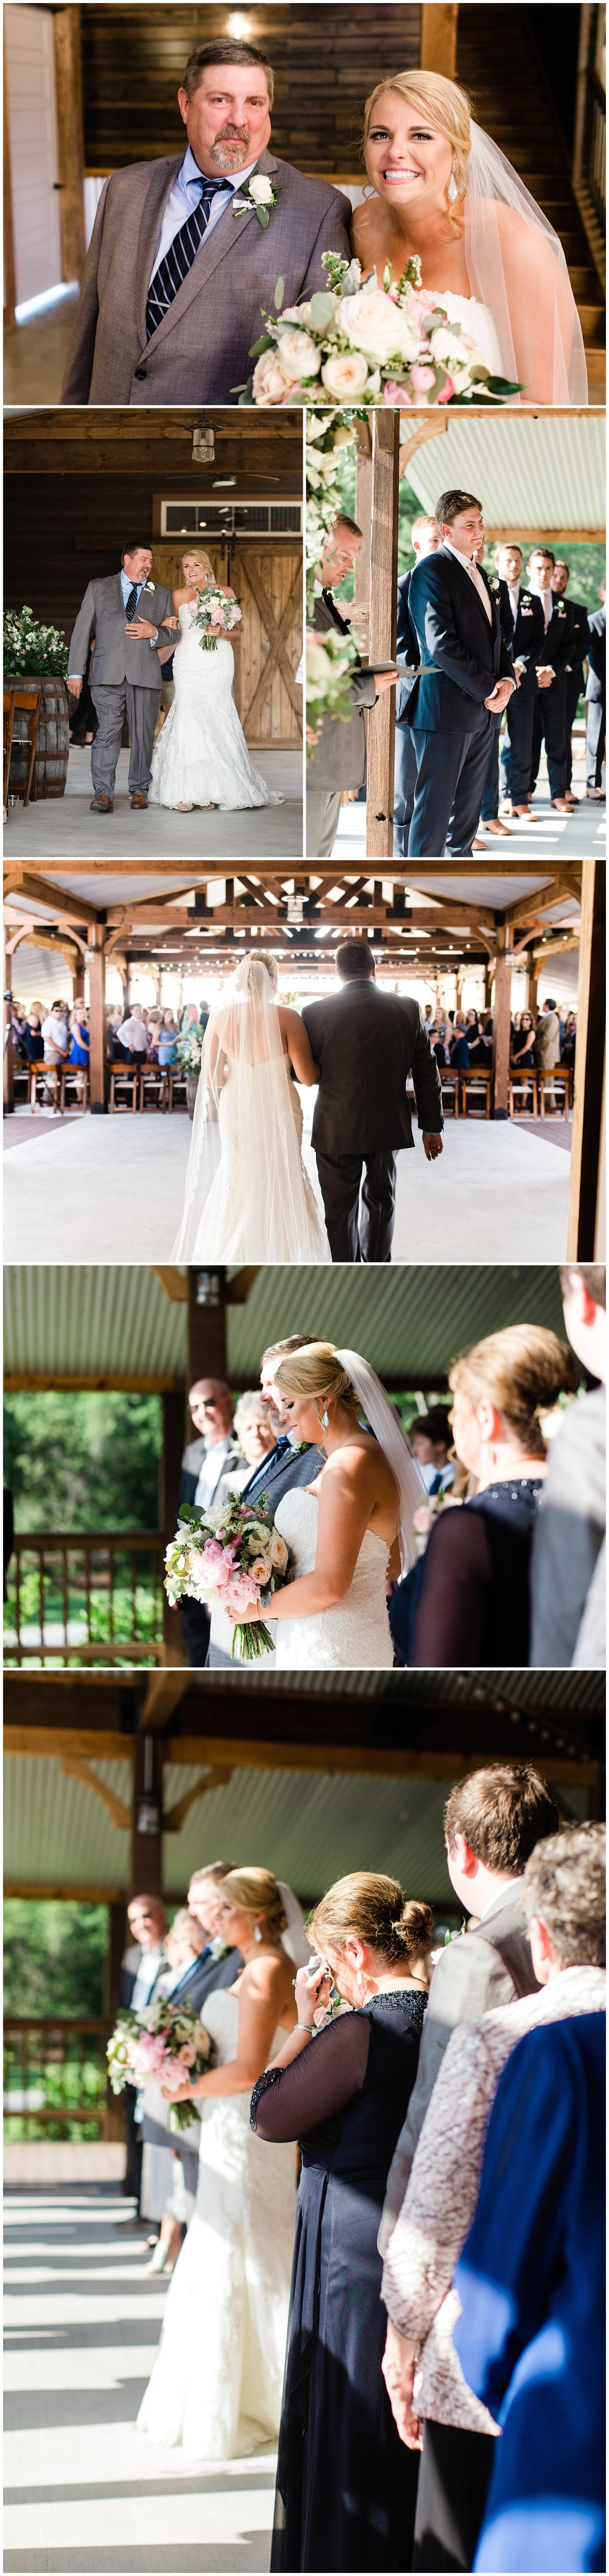 Peach_Creek_Ranch_Wedding_0022.jpg